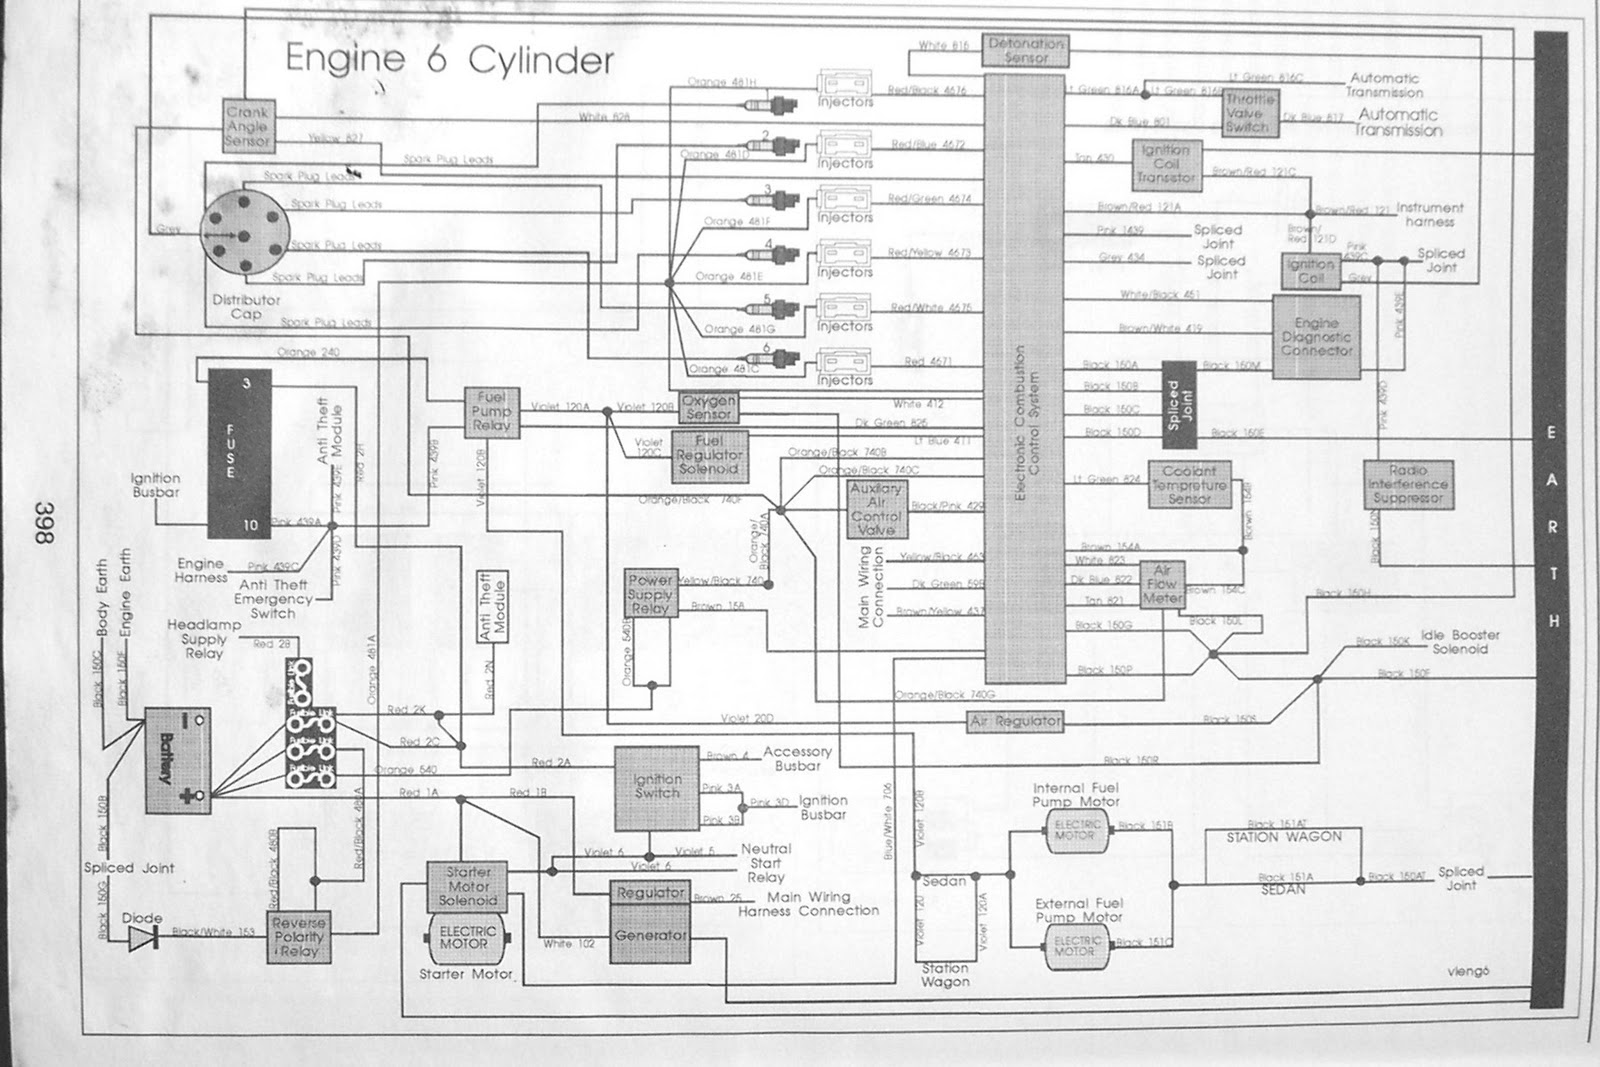 medium resolution of vl wiring diagram wiring diagram blogs toyota alternator diagram vl alternator wiring diagram